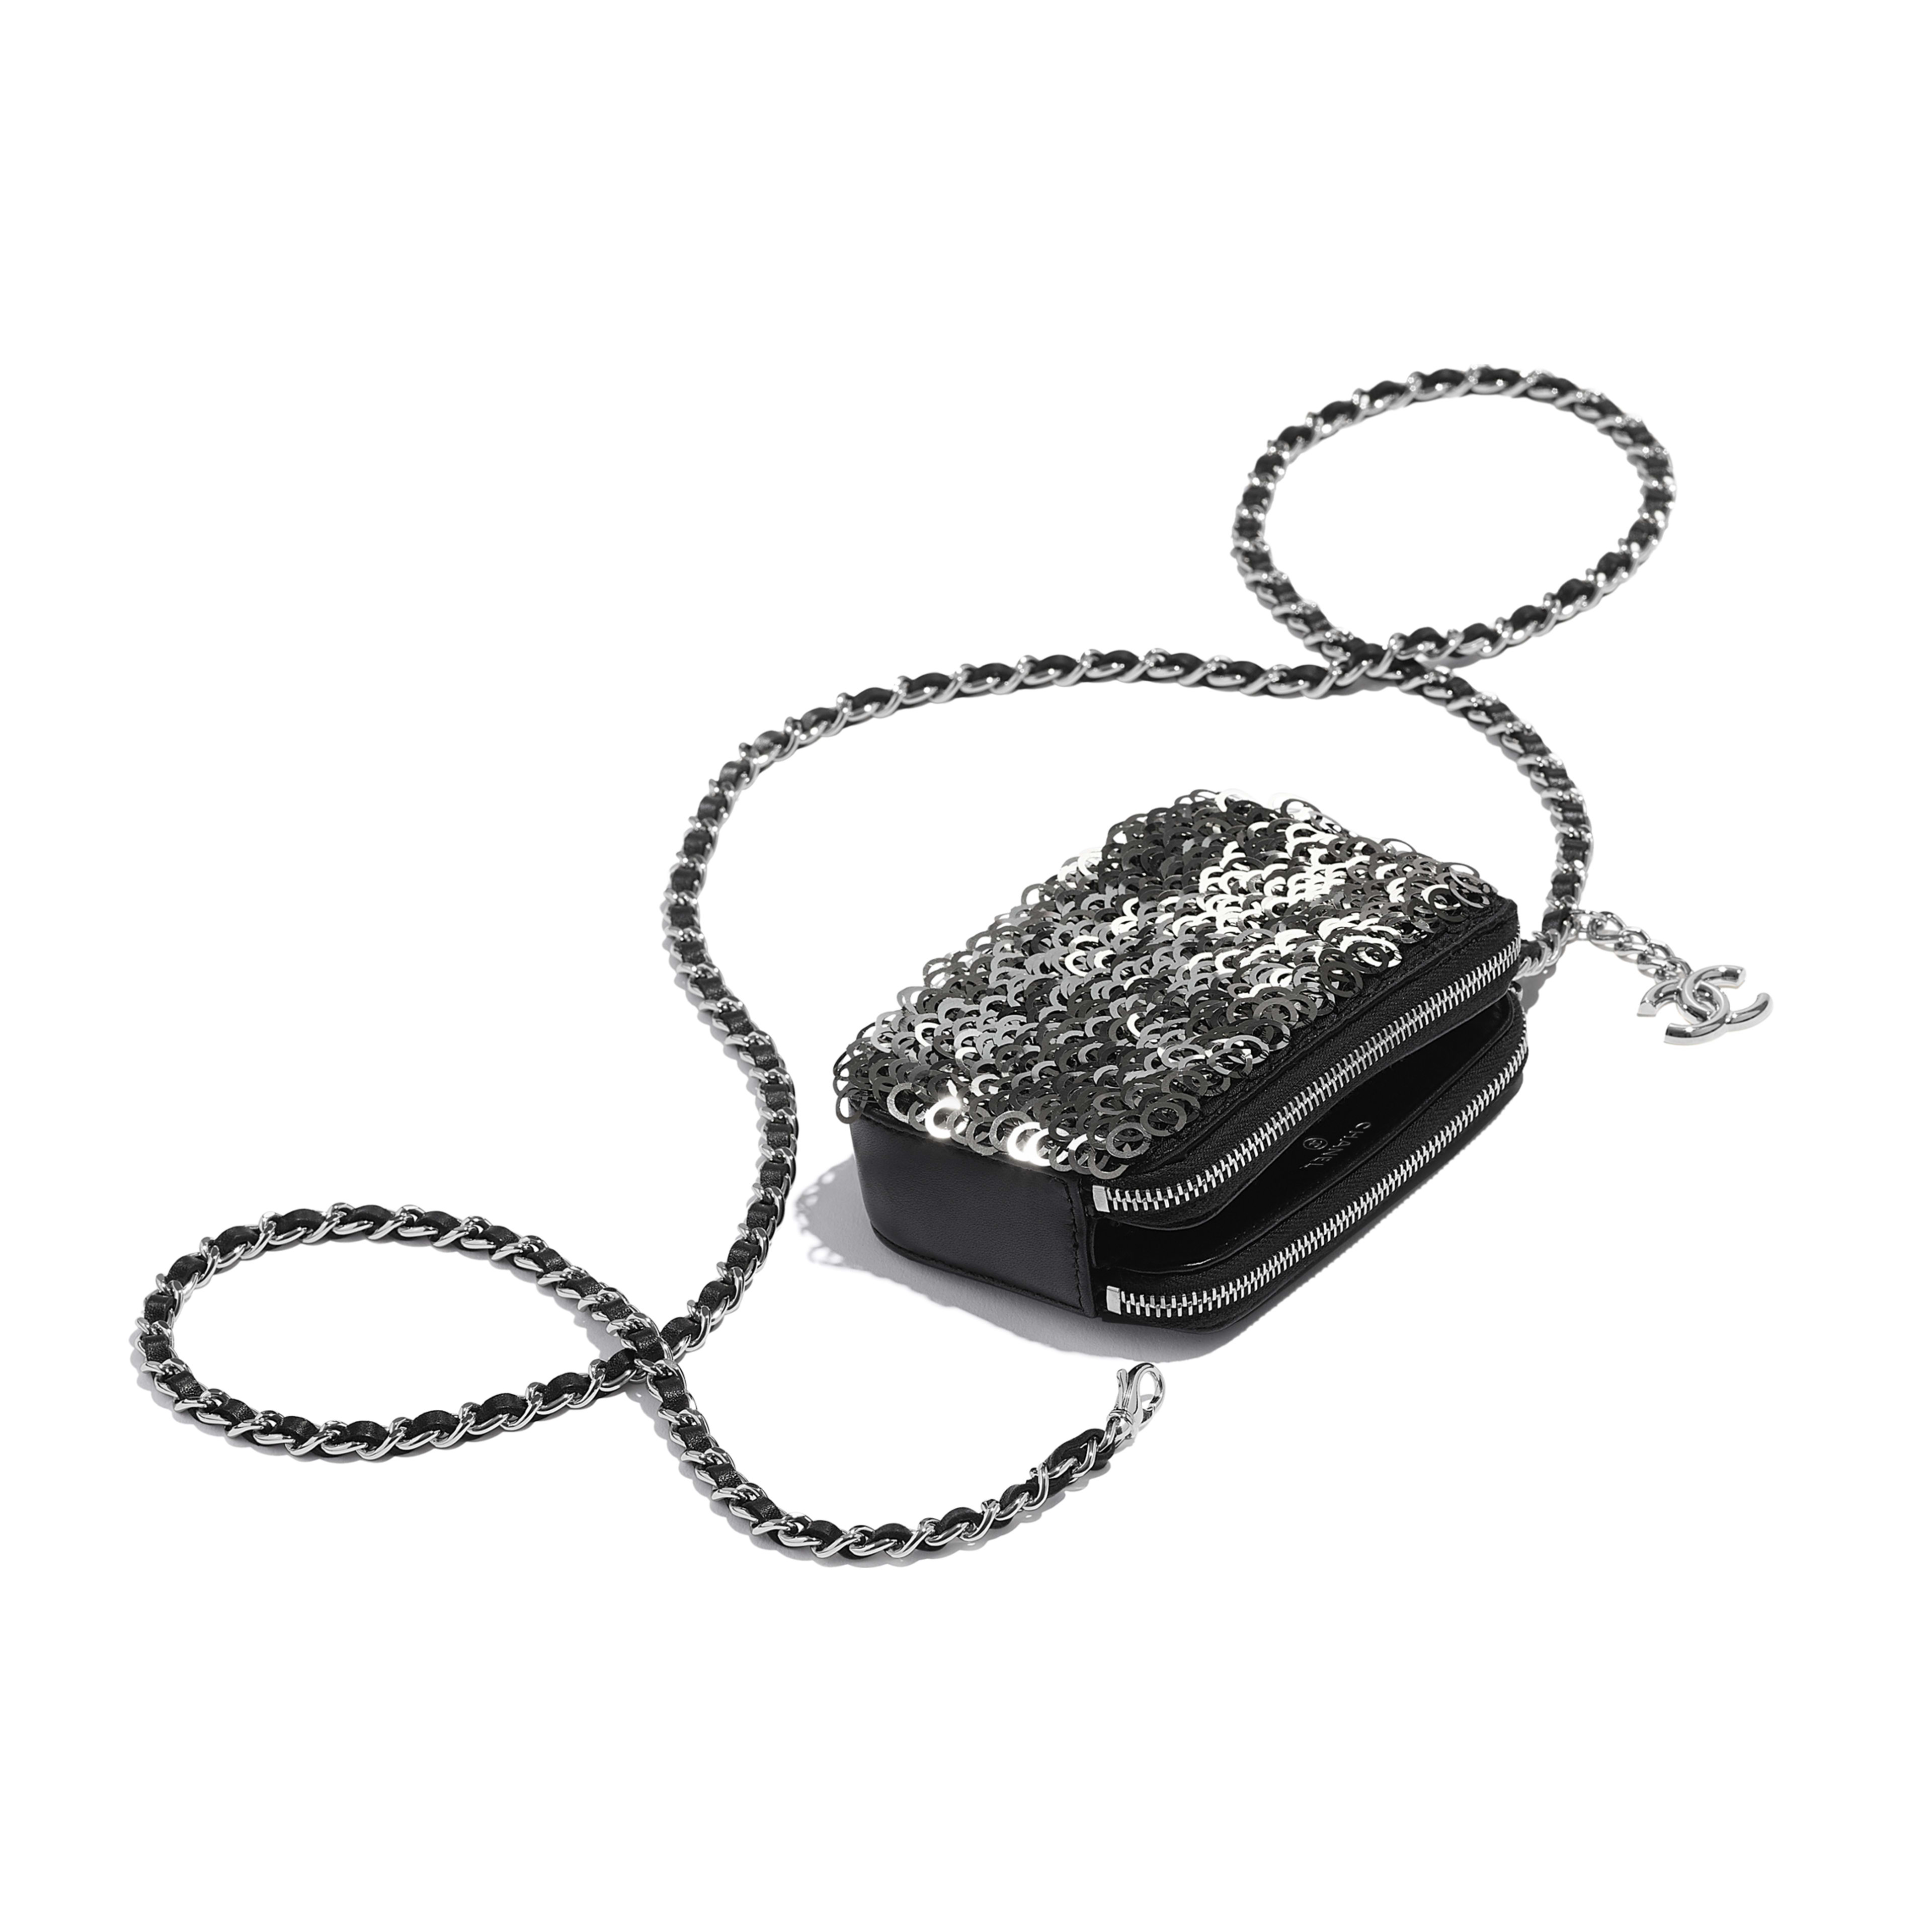 Clutch With Chain - Black, Silver & White - Lambskin, Sequins & Silver-Tone Metal - Extra view - see full sized version